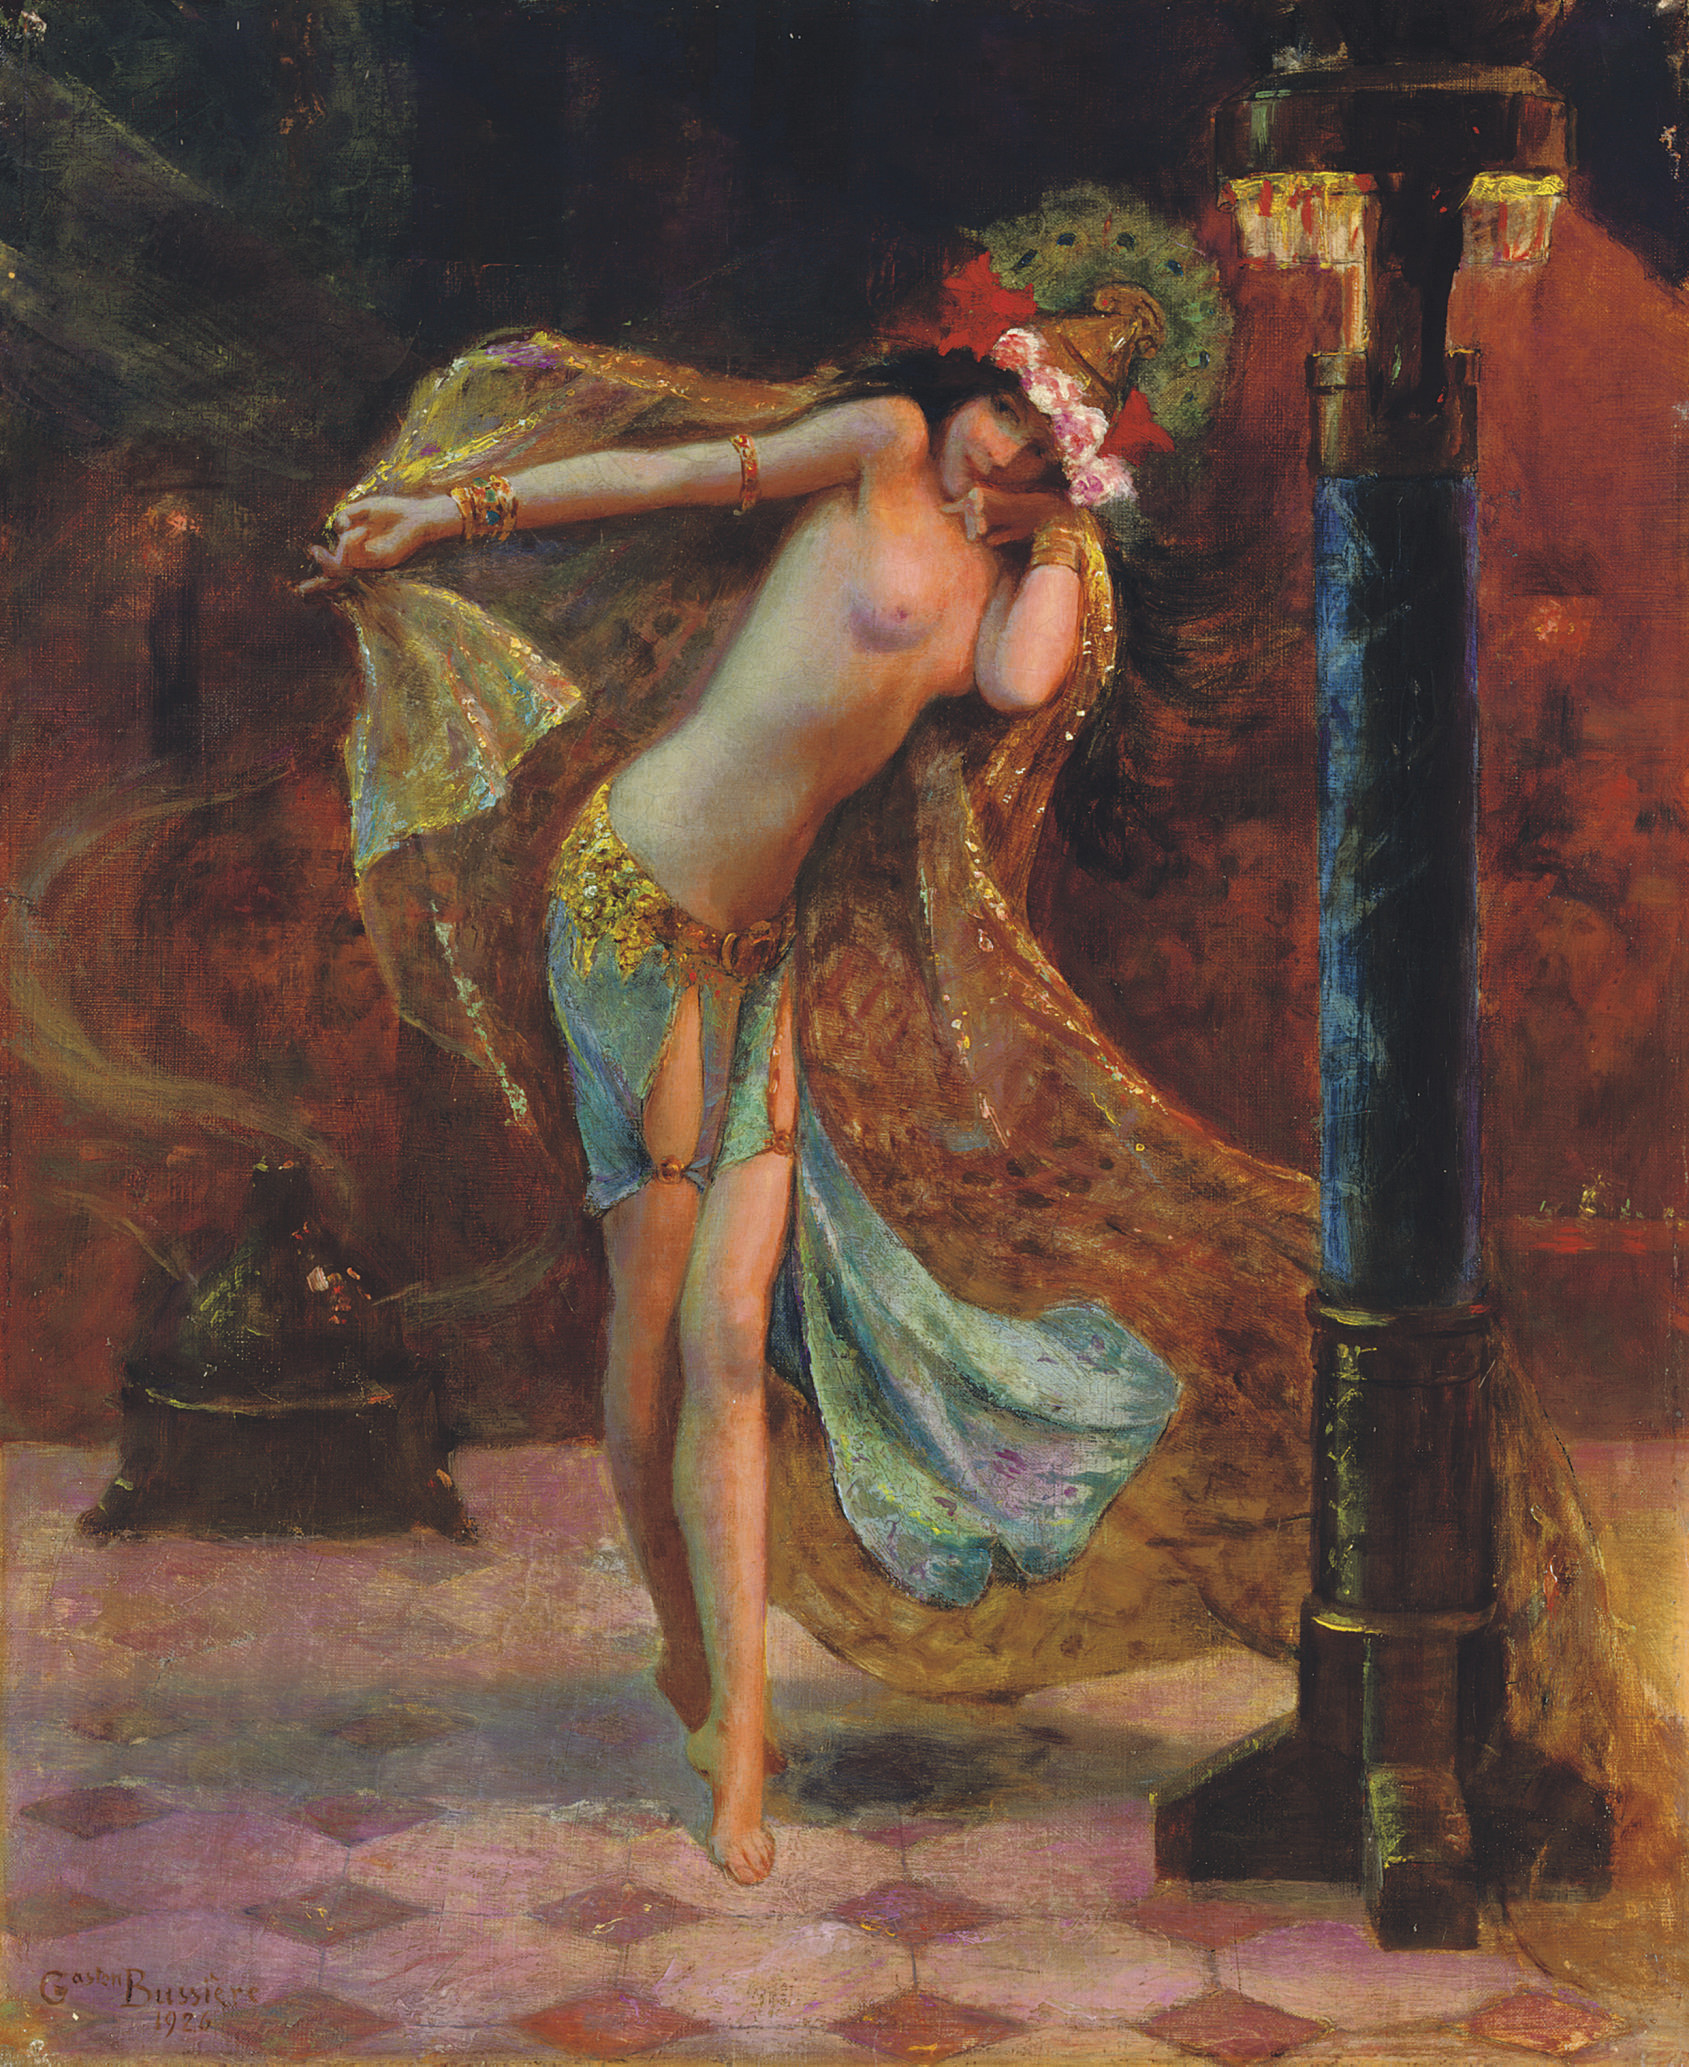 Gaston Bussière (French, 1862-